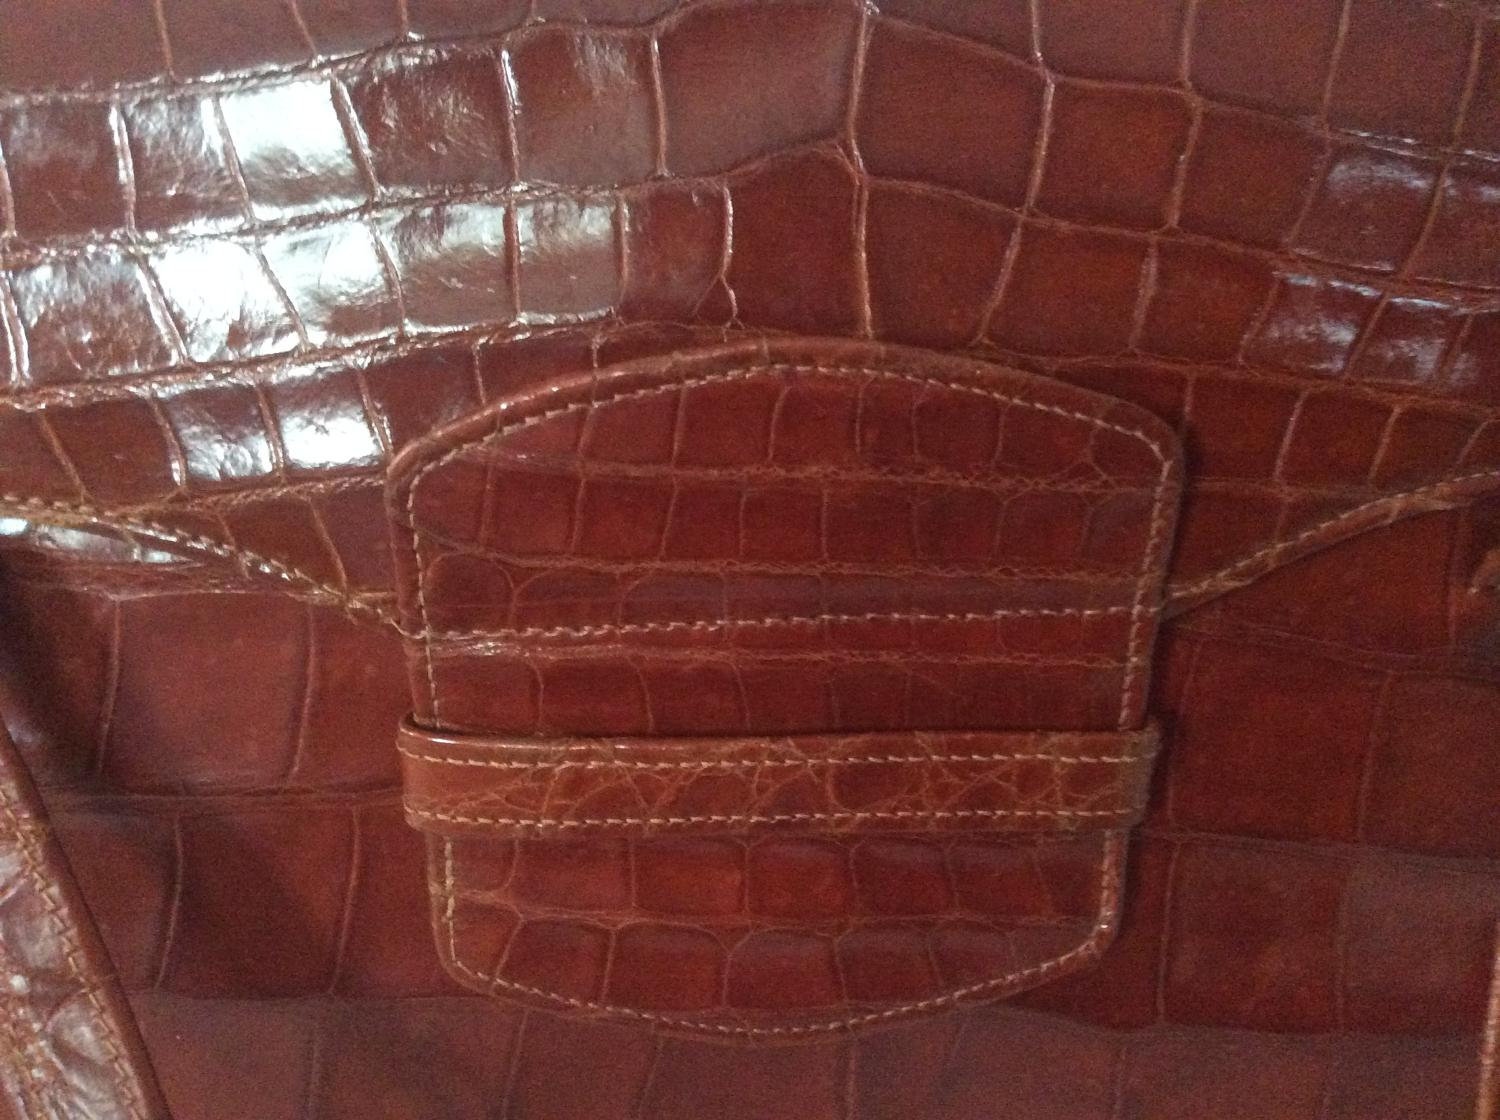 Vintage Art Deco 1930s crocodile handbag